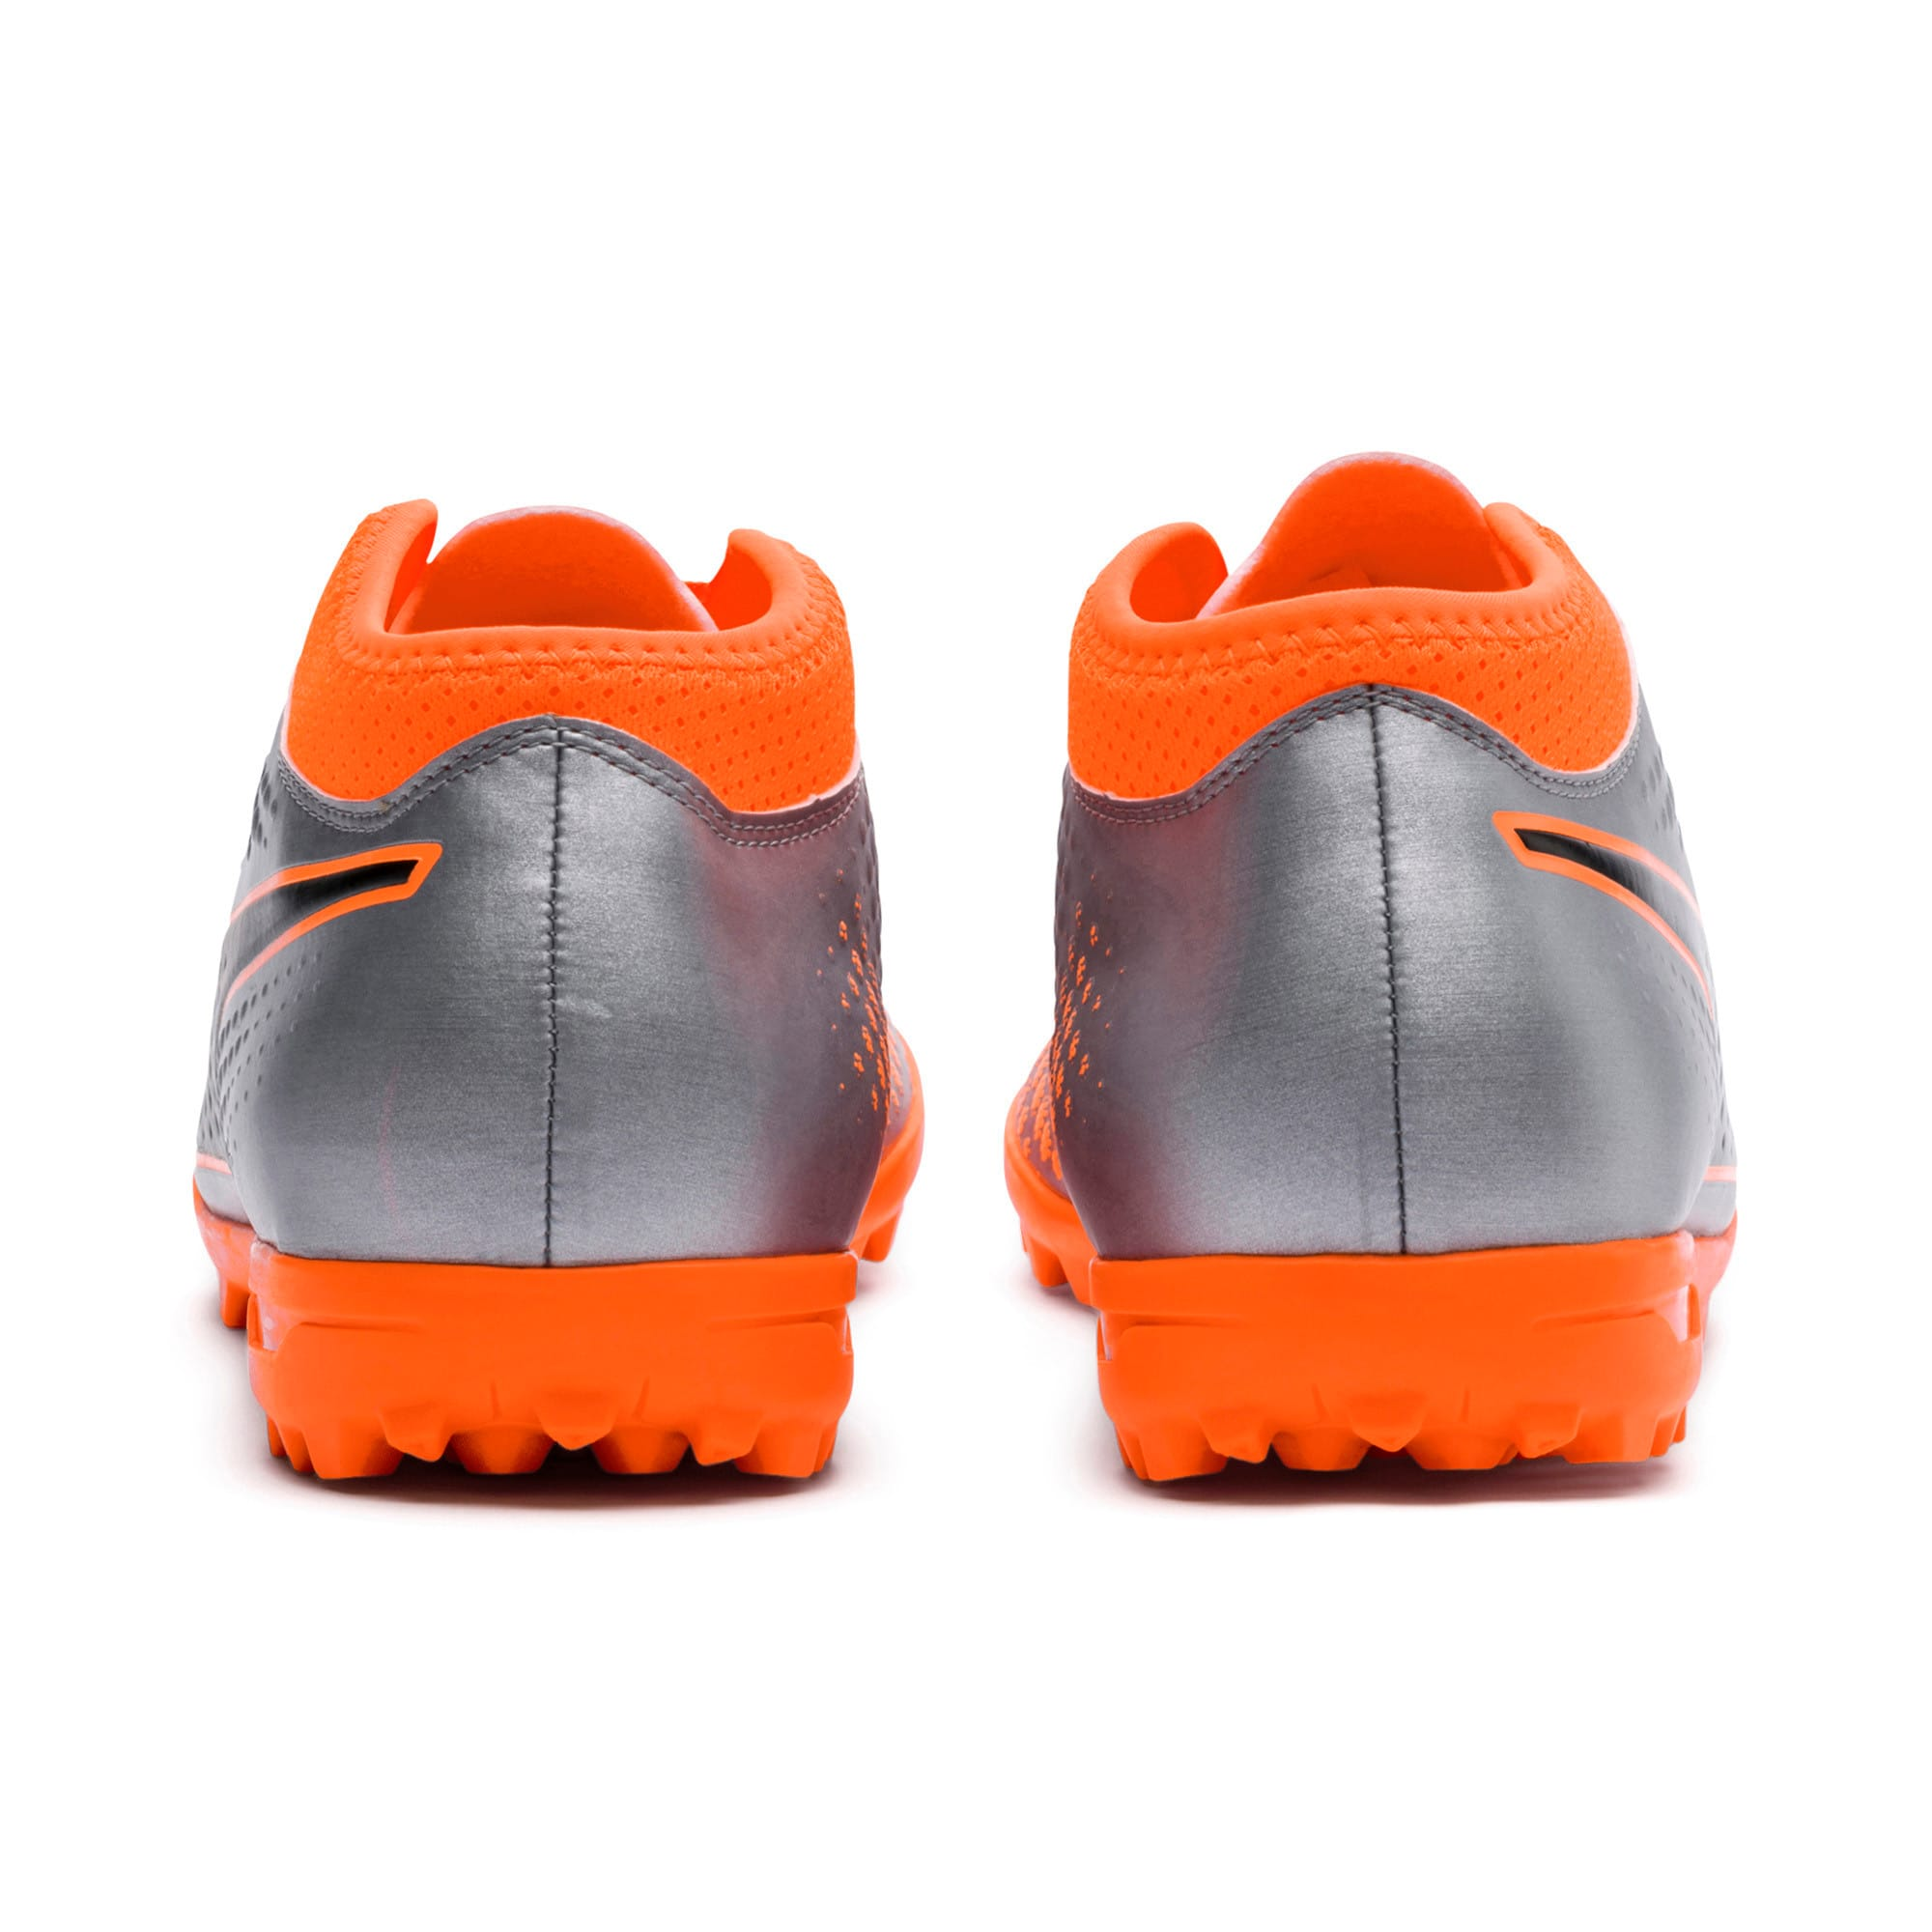 Thumbnail 3 of PUMA ONE 4 Synthetic TT Men's Football Boots, Silver-Orange-Black, medium-IND